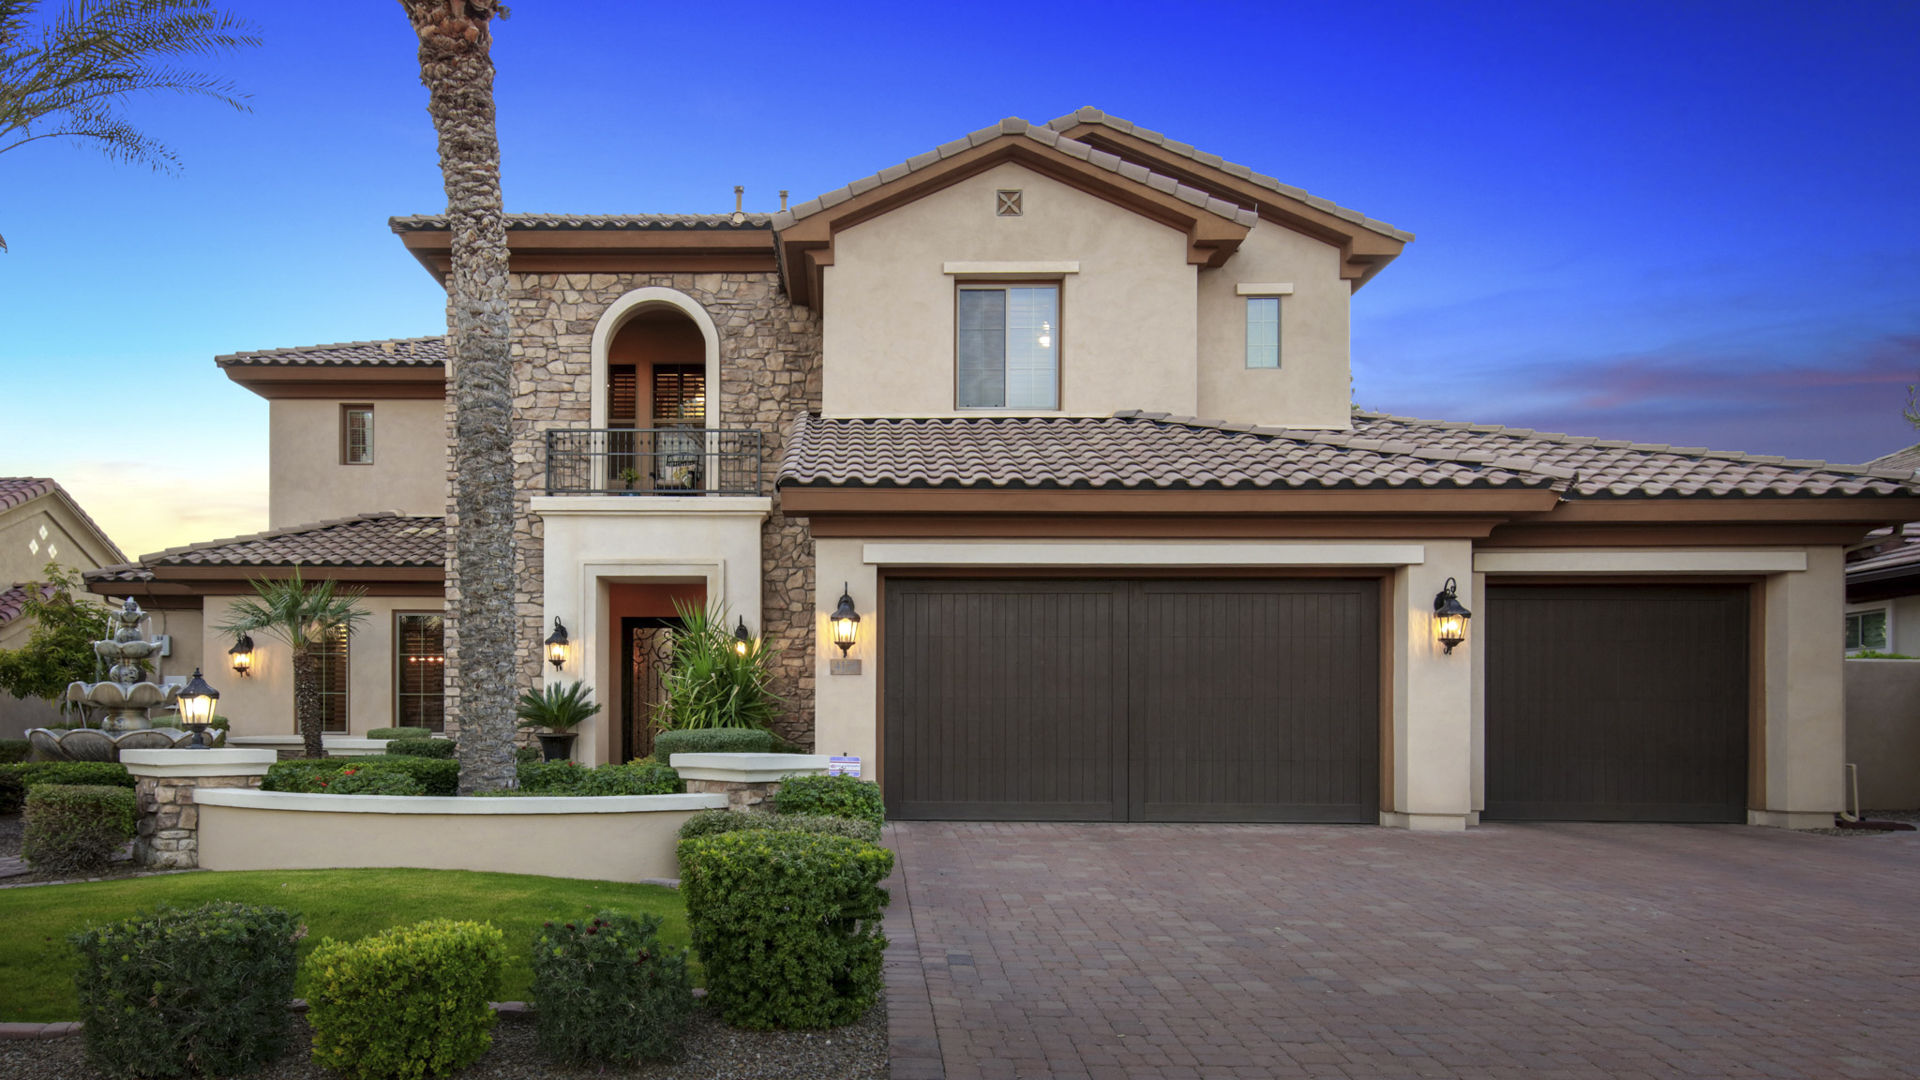 HOT LISTING - 4170 S Pacific Dr, Chandler, AZ 85248 - Fulton Ranch | Amy Jones Group